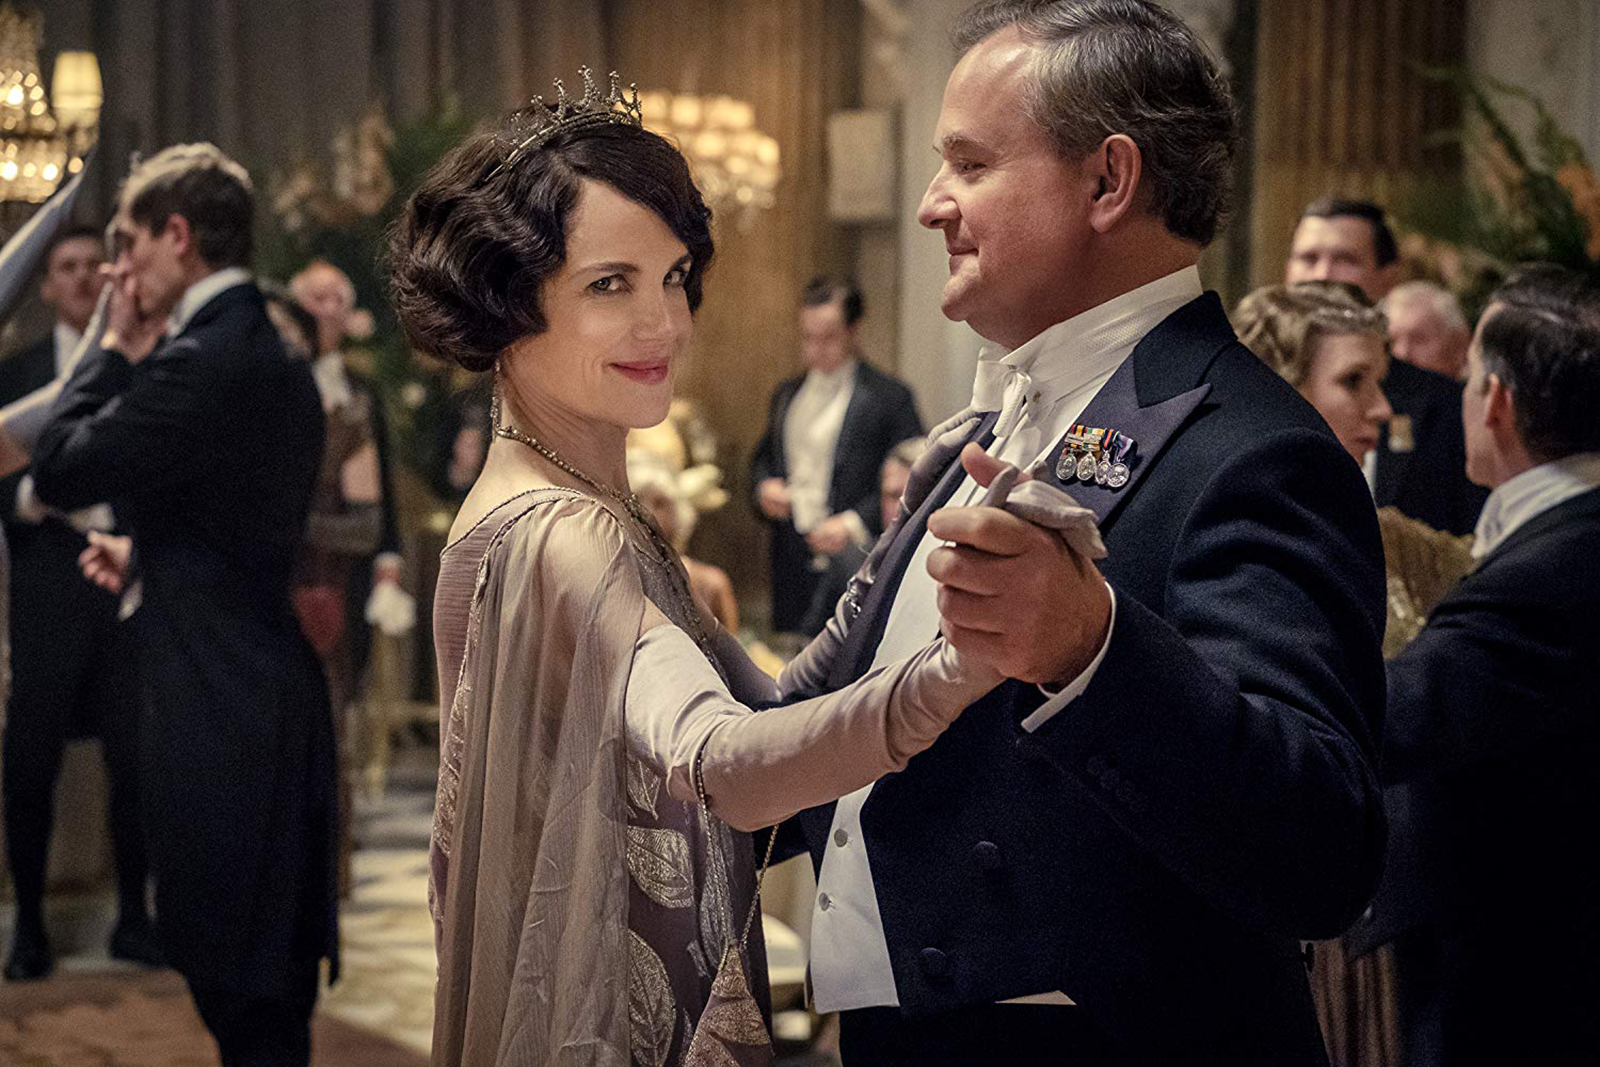 'Downton Abbey' film sequel coming for Christmas